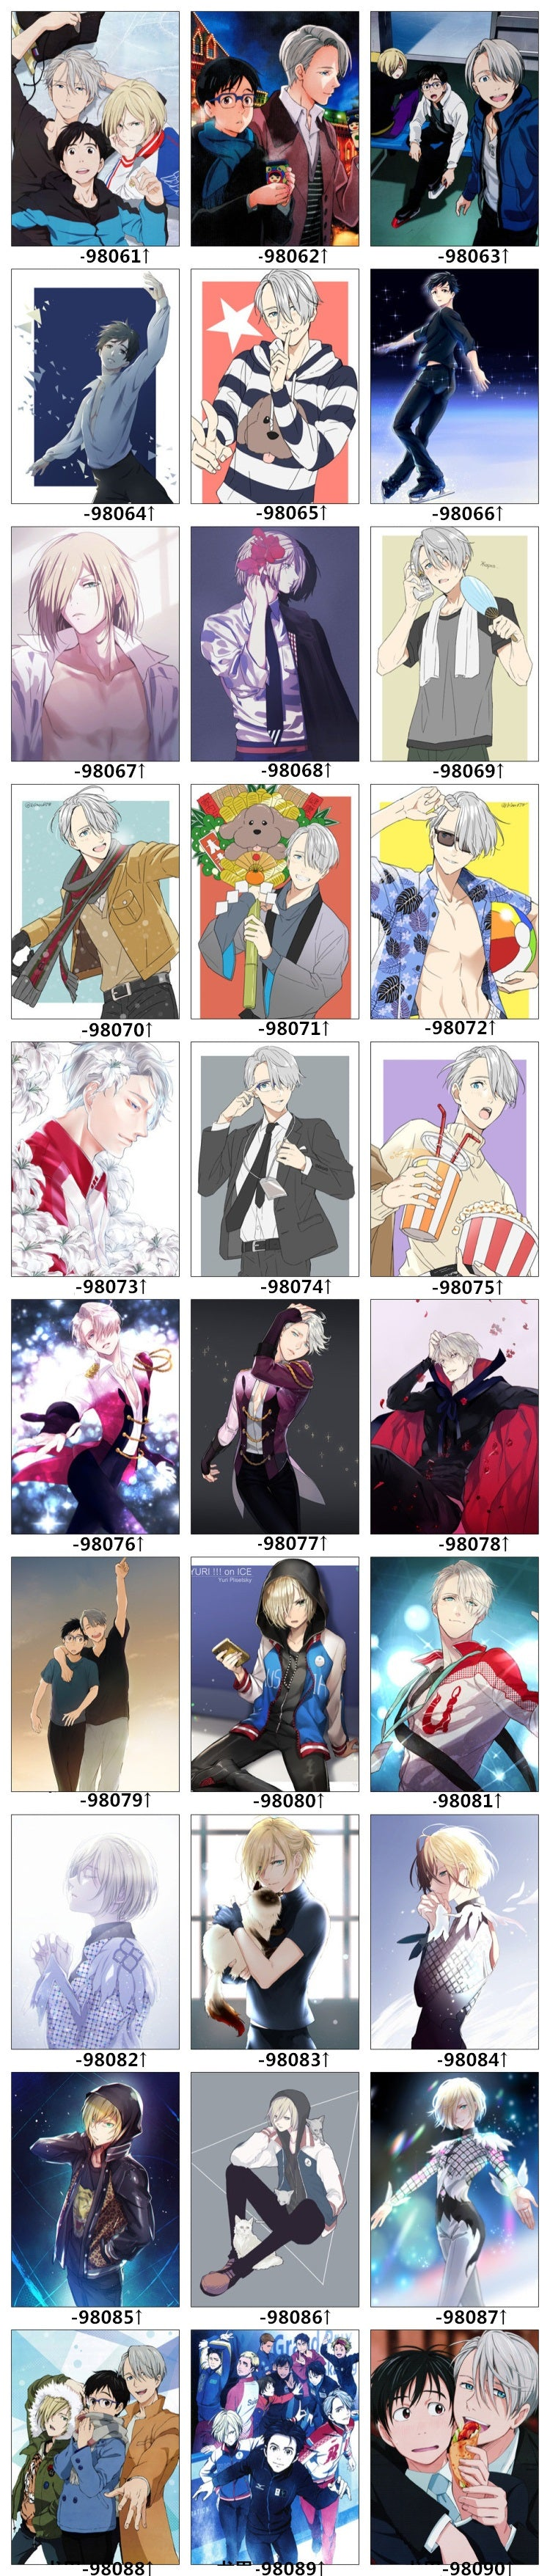 Yuri on ice bed set, bed sheets designs